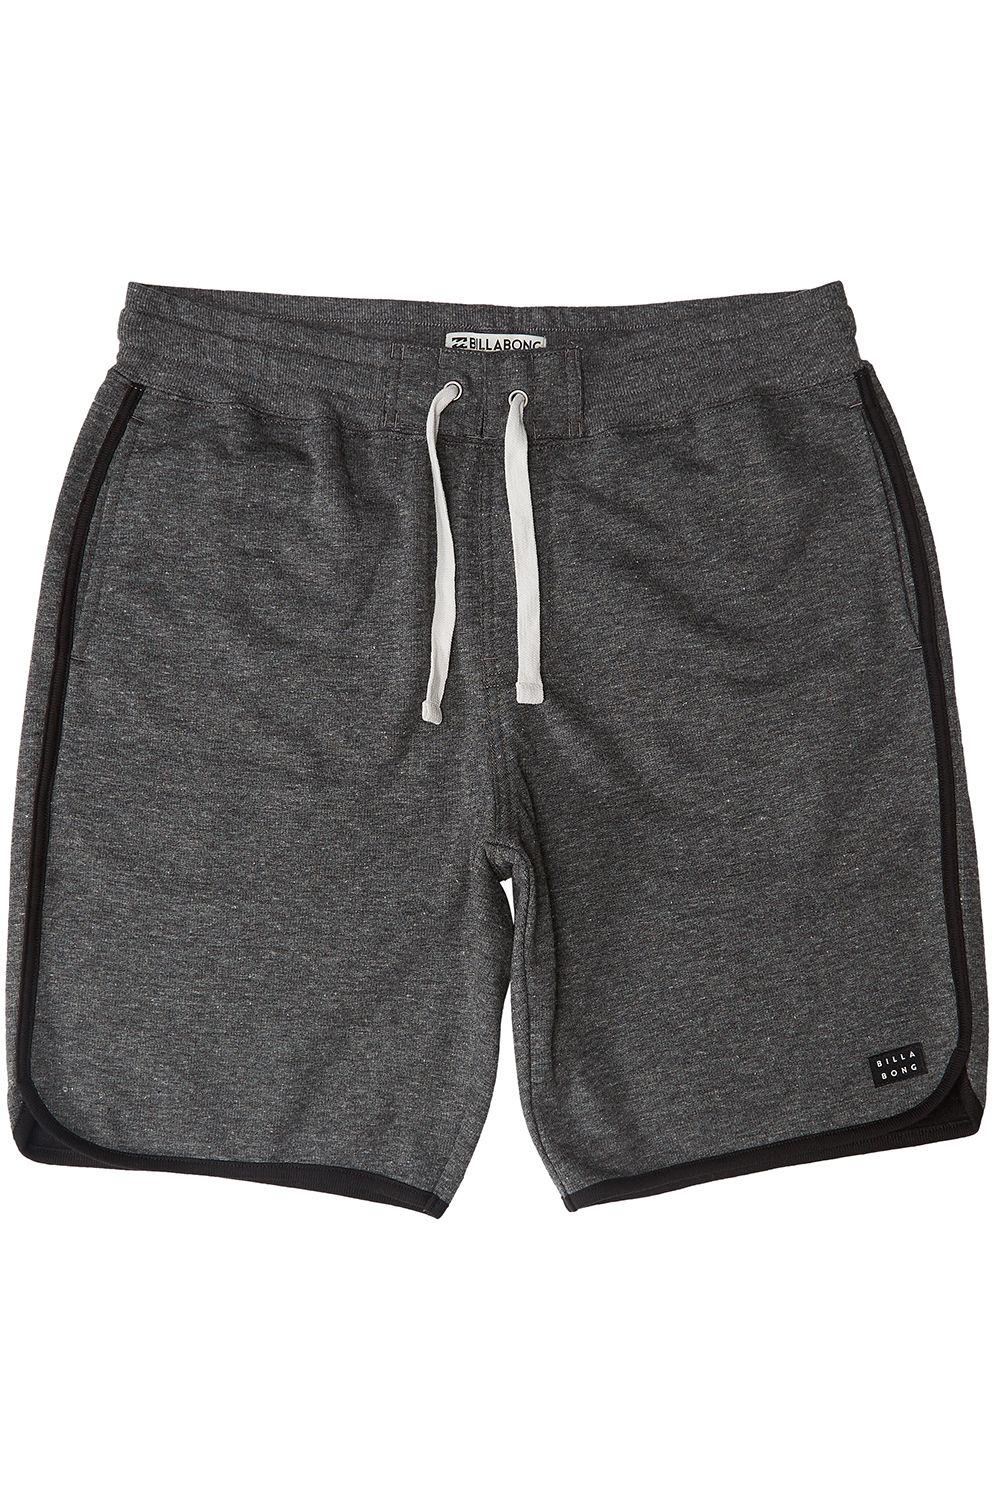 Walkshorts Billabong ALL DAY Black